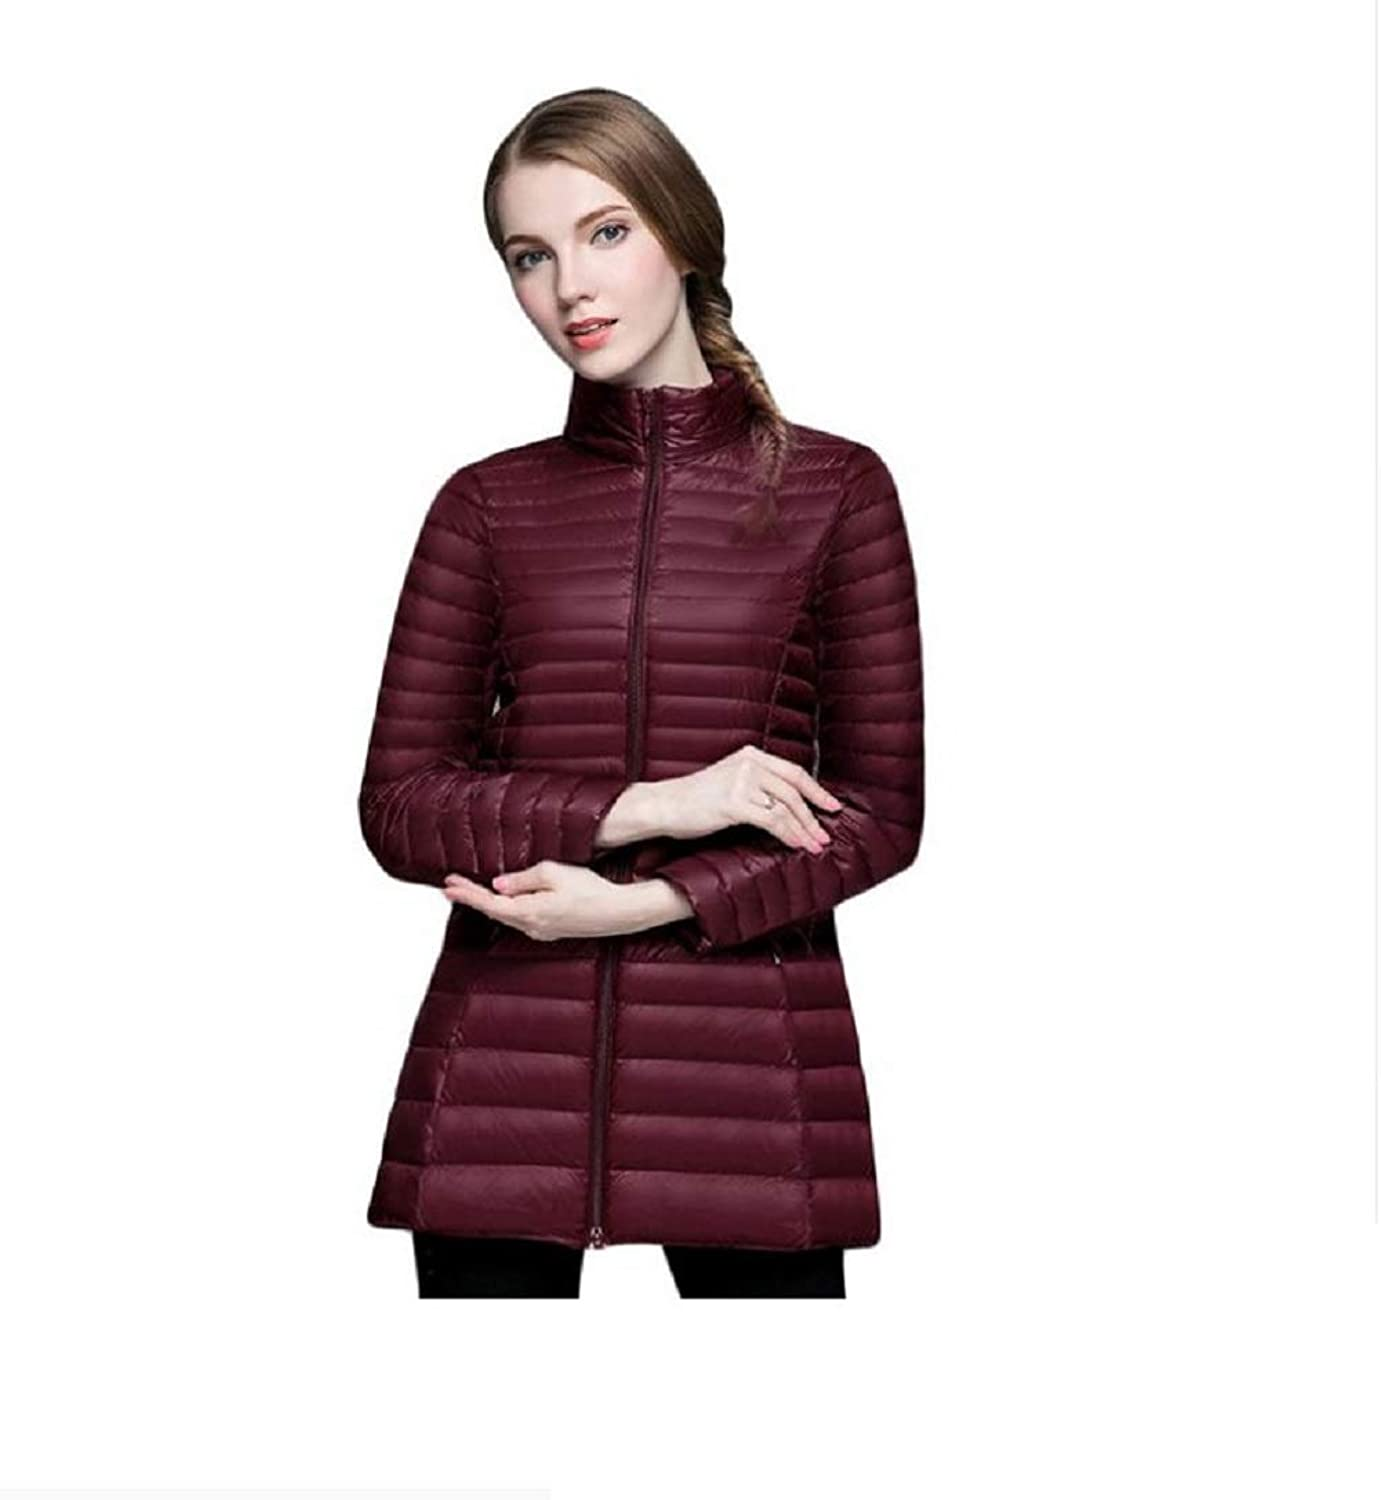 Aehoor Womens Collar Ultra Light Autumn Winter Warm Long Down Jacket 90% Duck Down